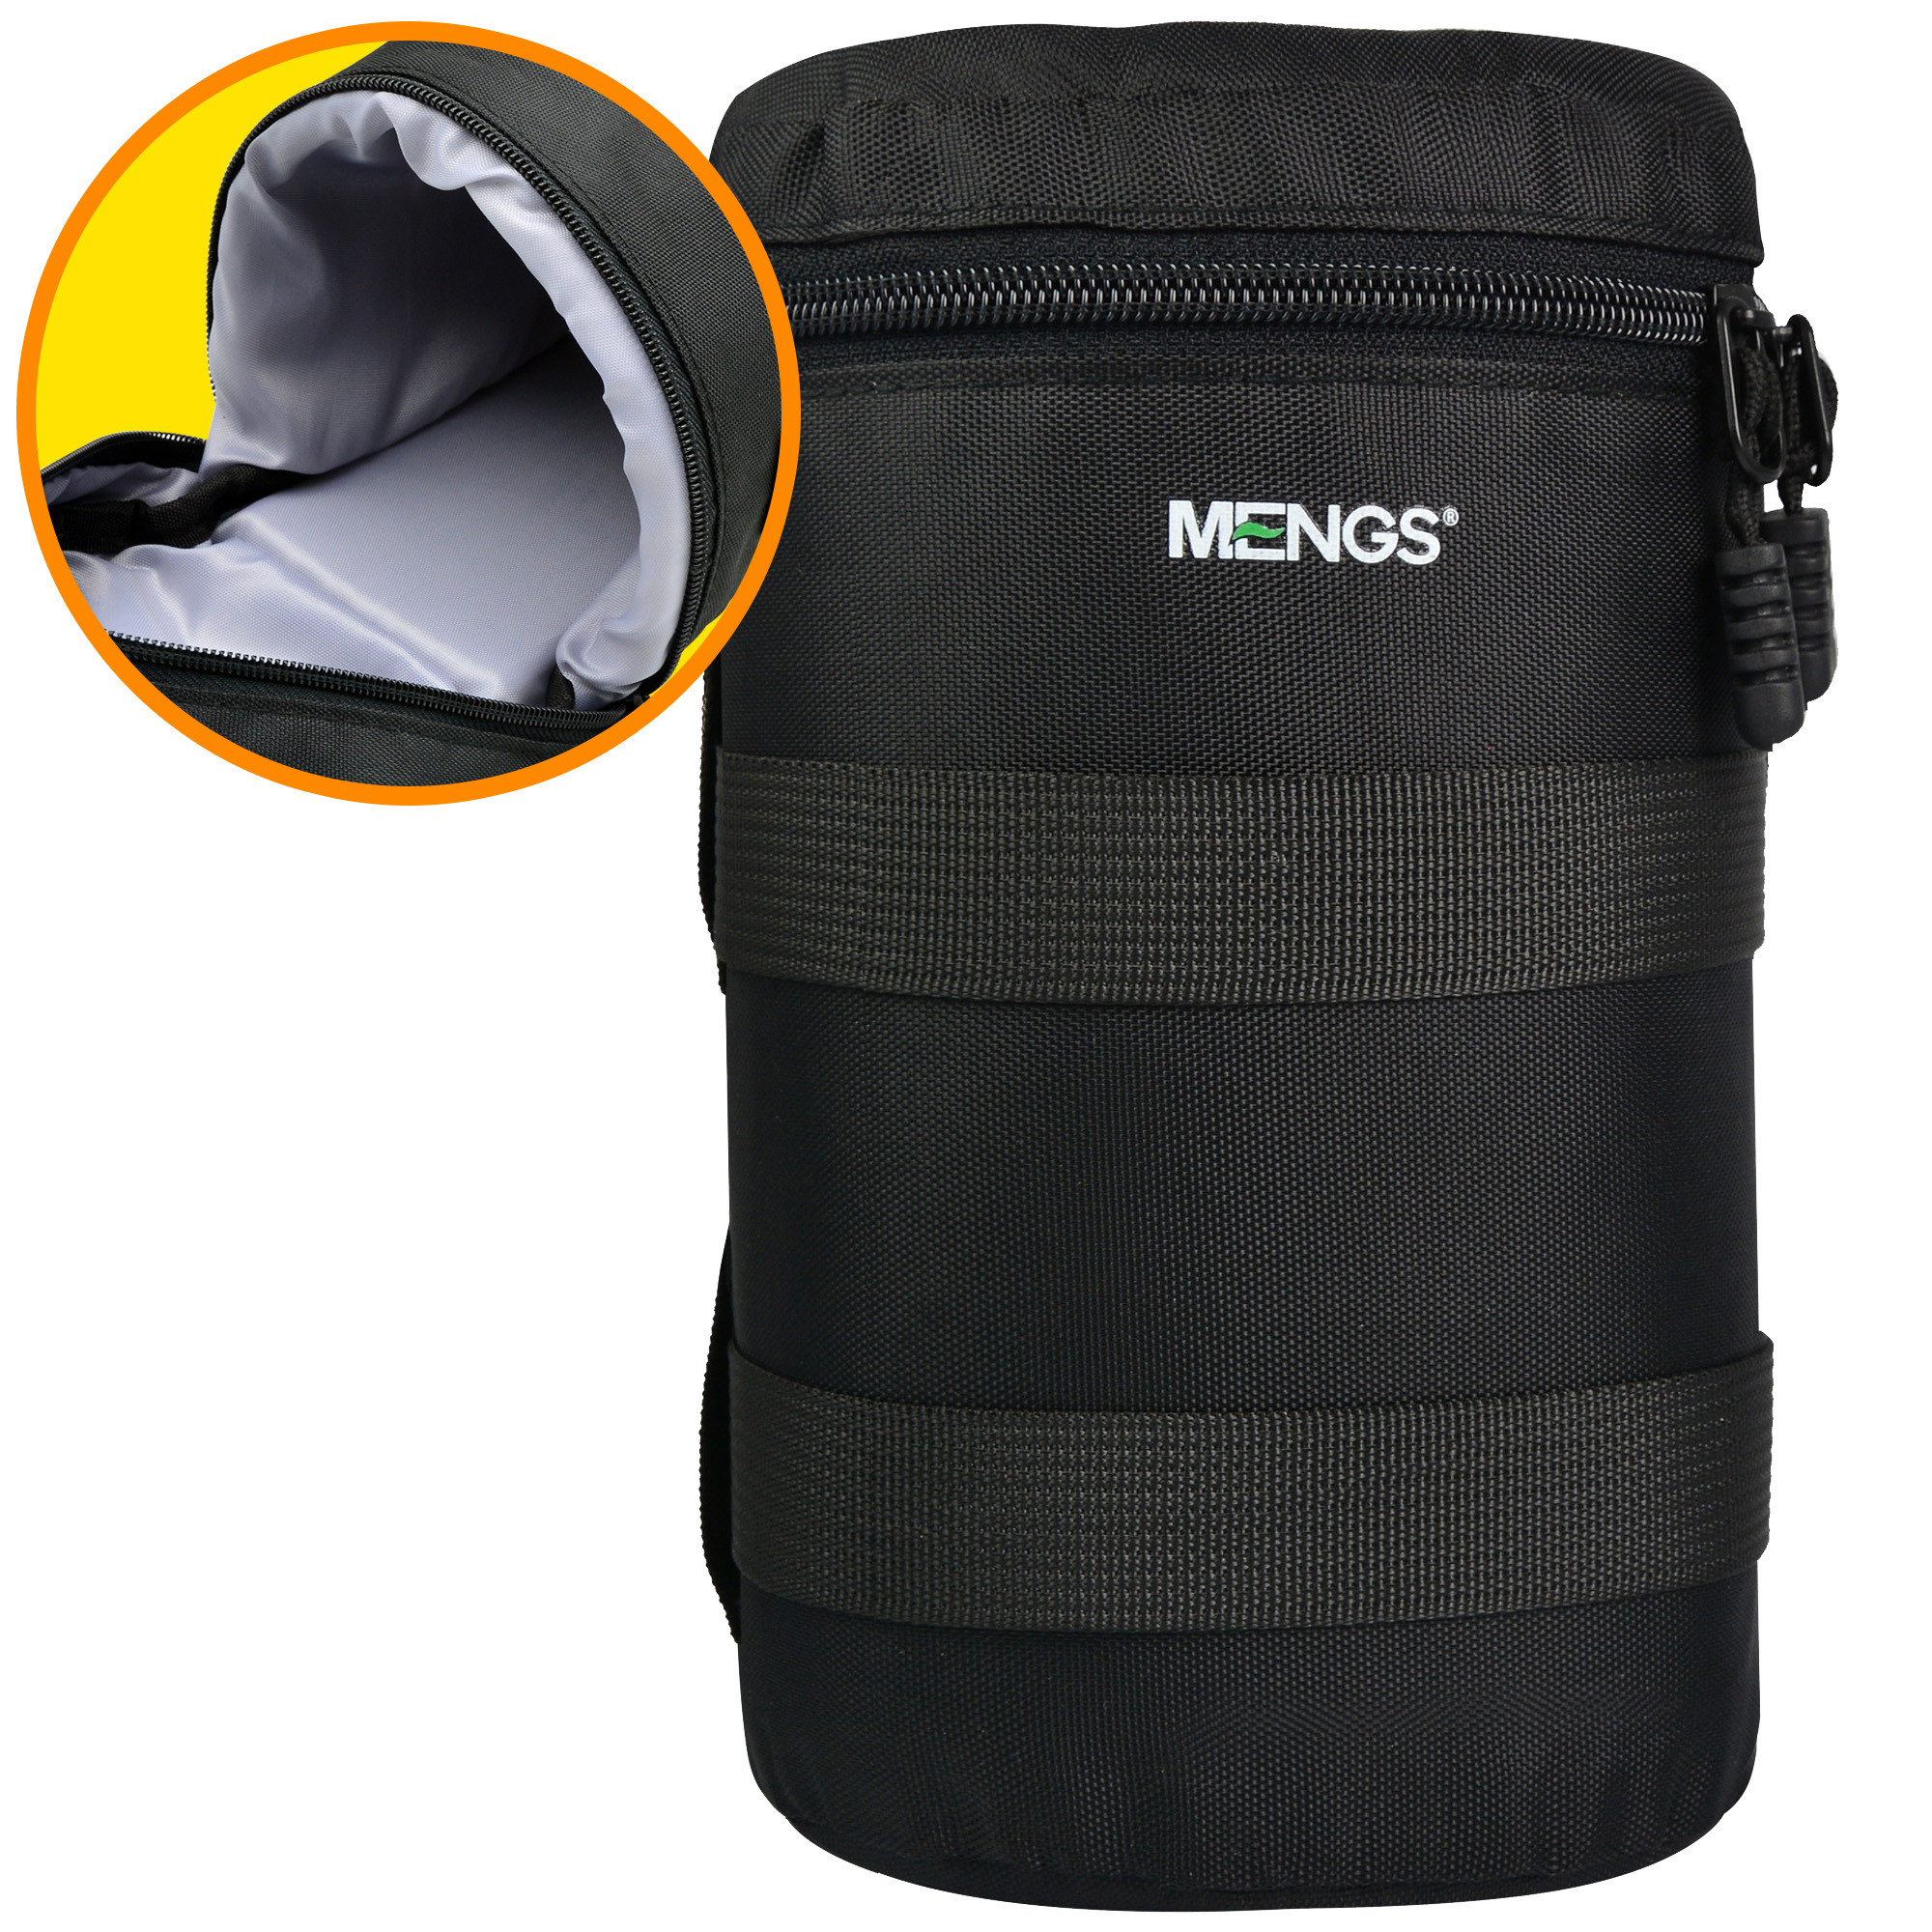 Mengsphoto Mengs 174 Fy 5 Padded Camera Lens Bag With 800d